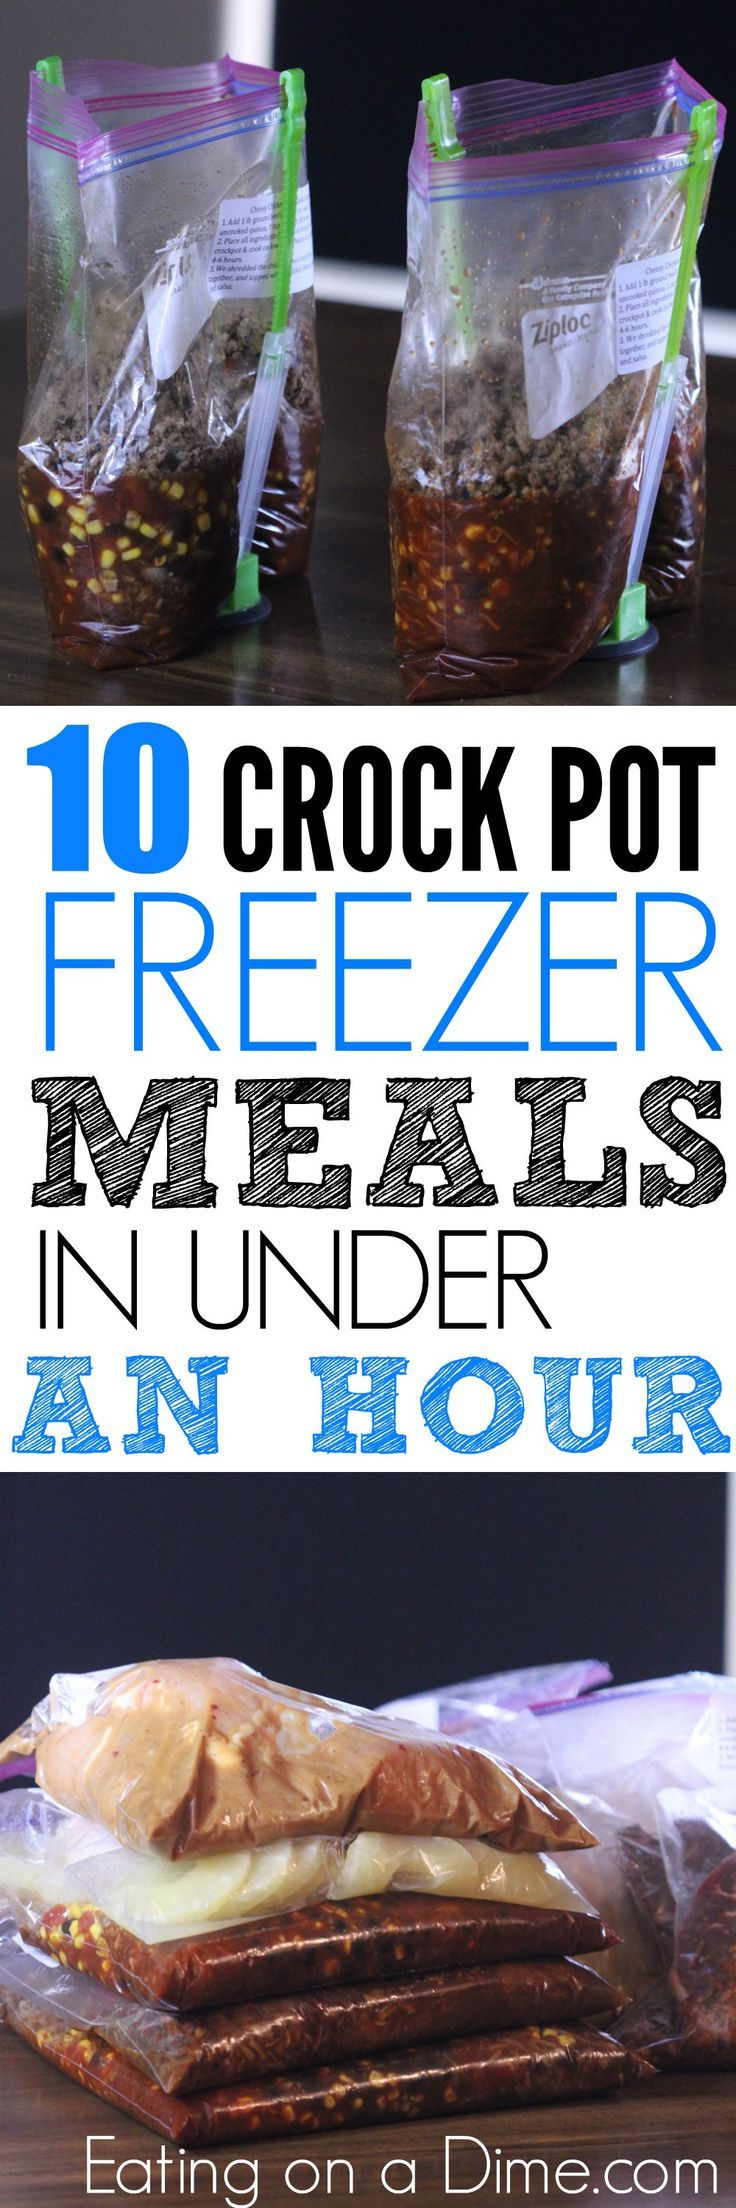 10 Crock Pot Make ahead Meals ready in the freezer in under an Hour - you can do this!